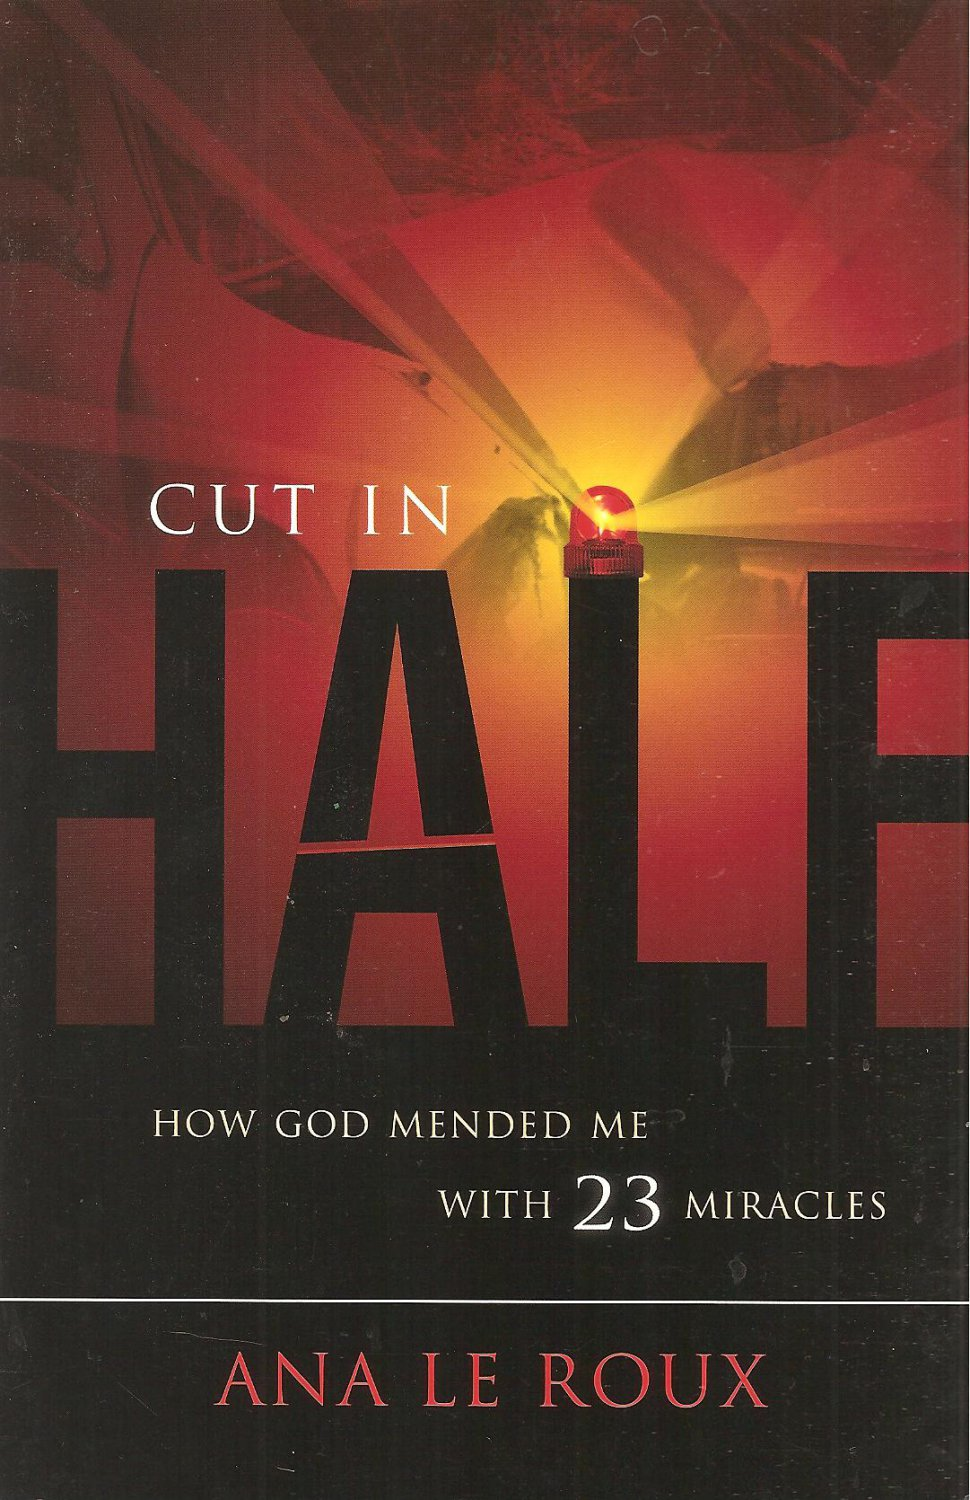 Cut In Half - How God Mended Me With 23 Miracles